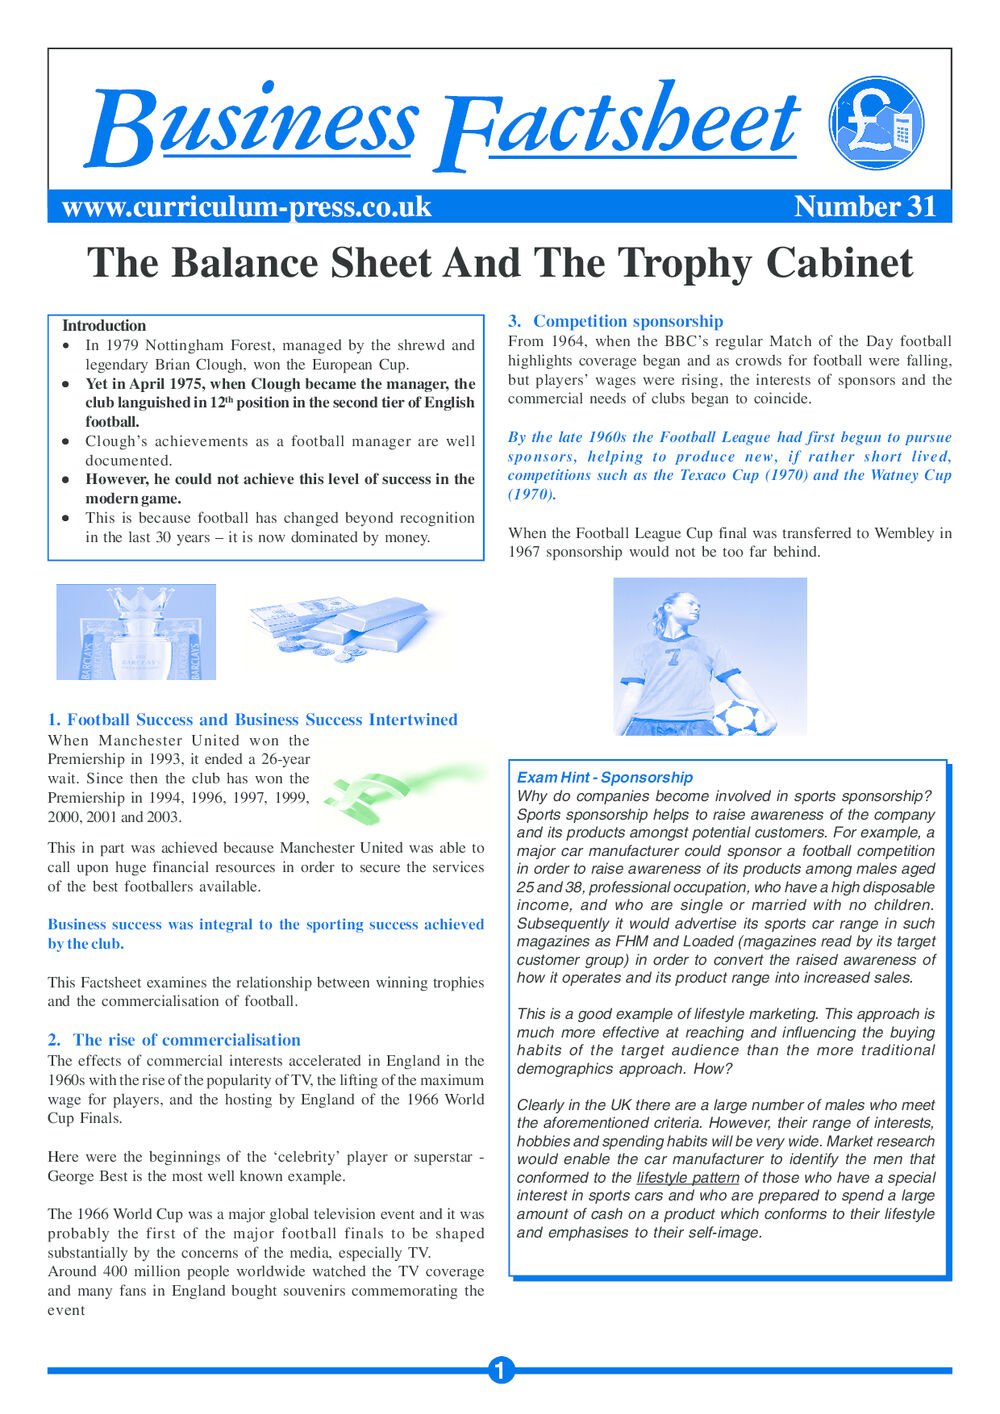 31 Balance Sheet And Trophy